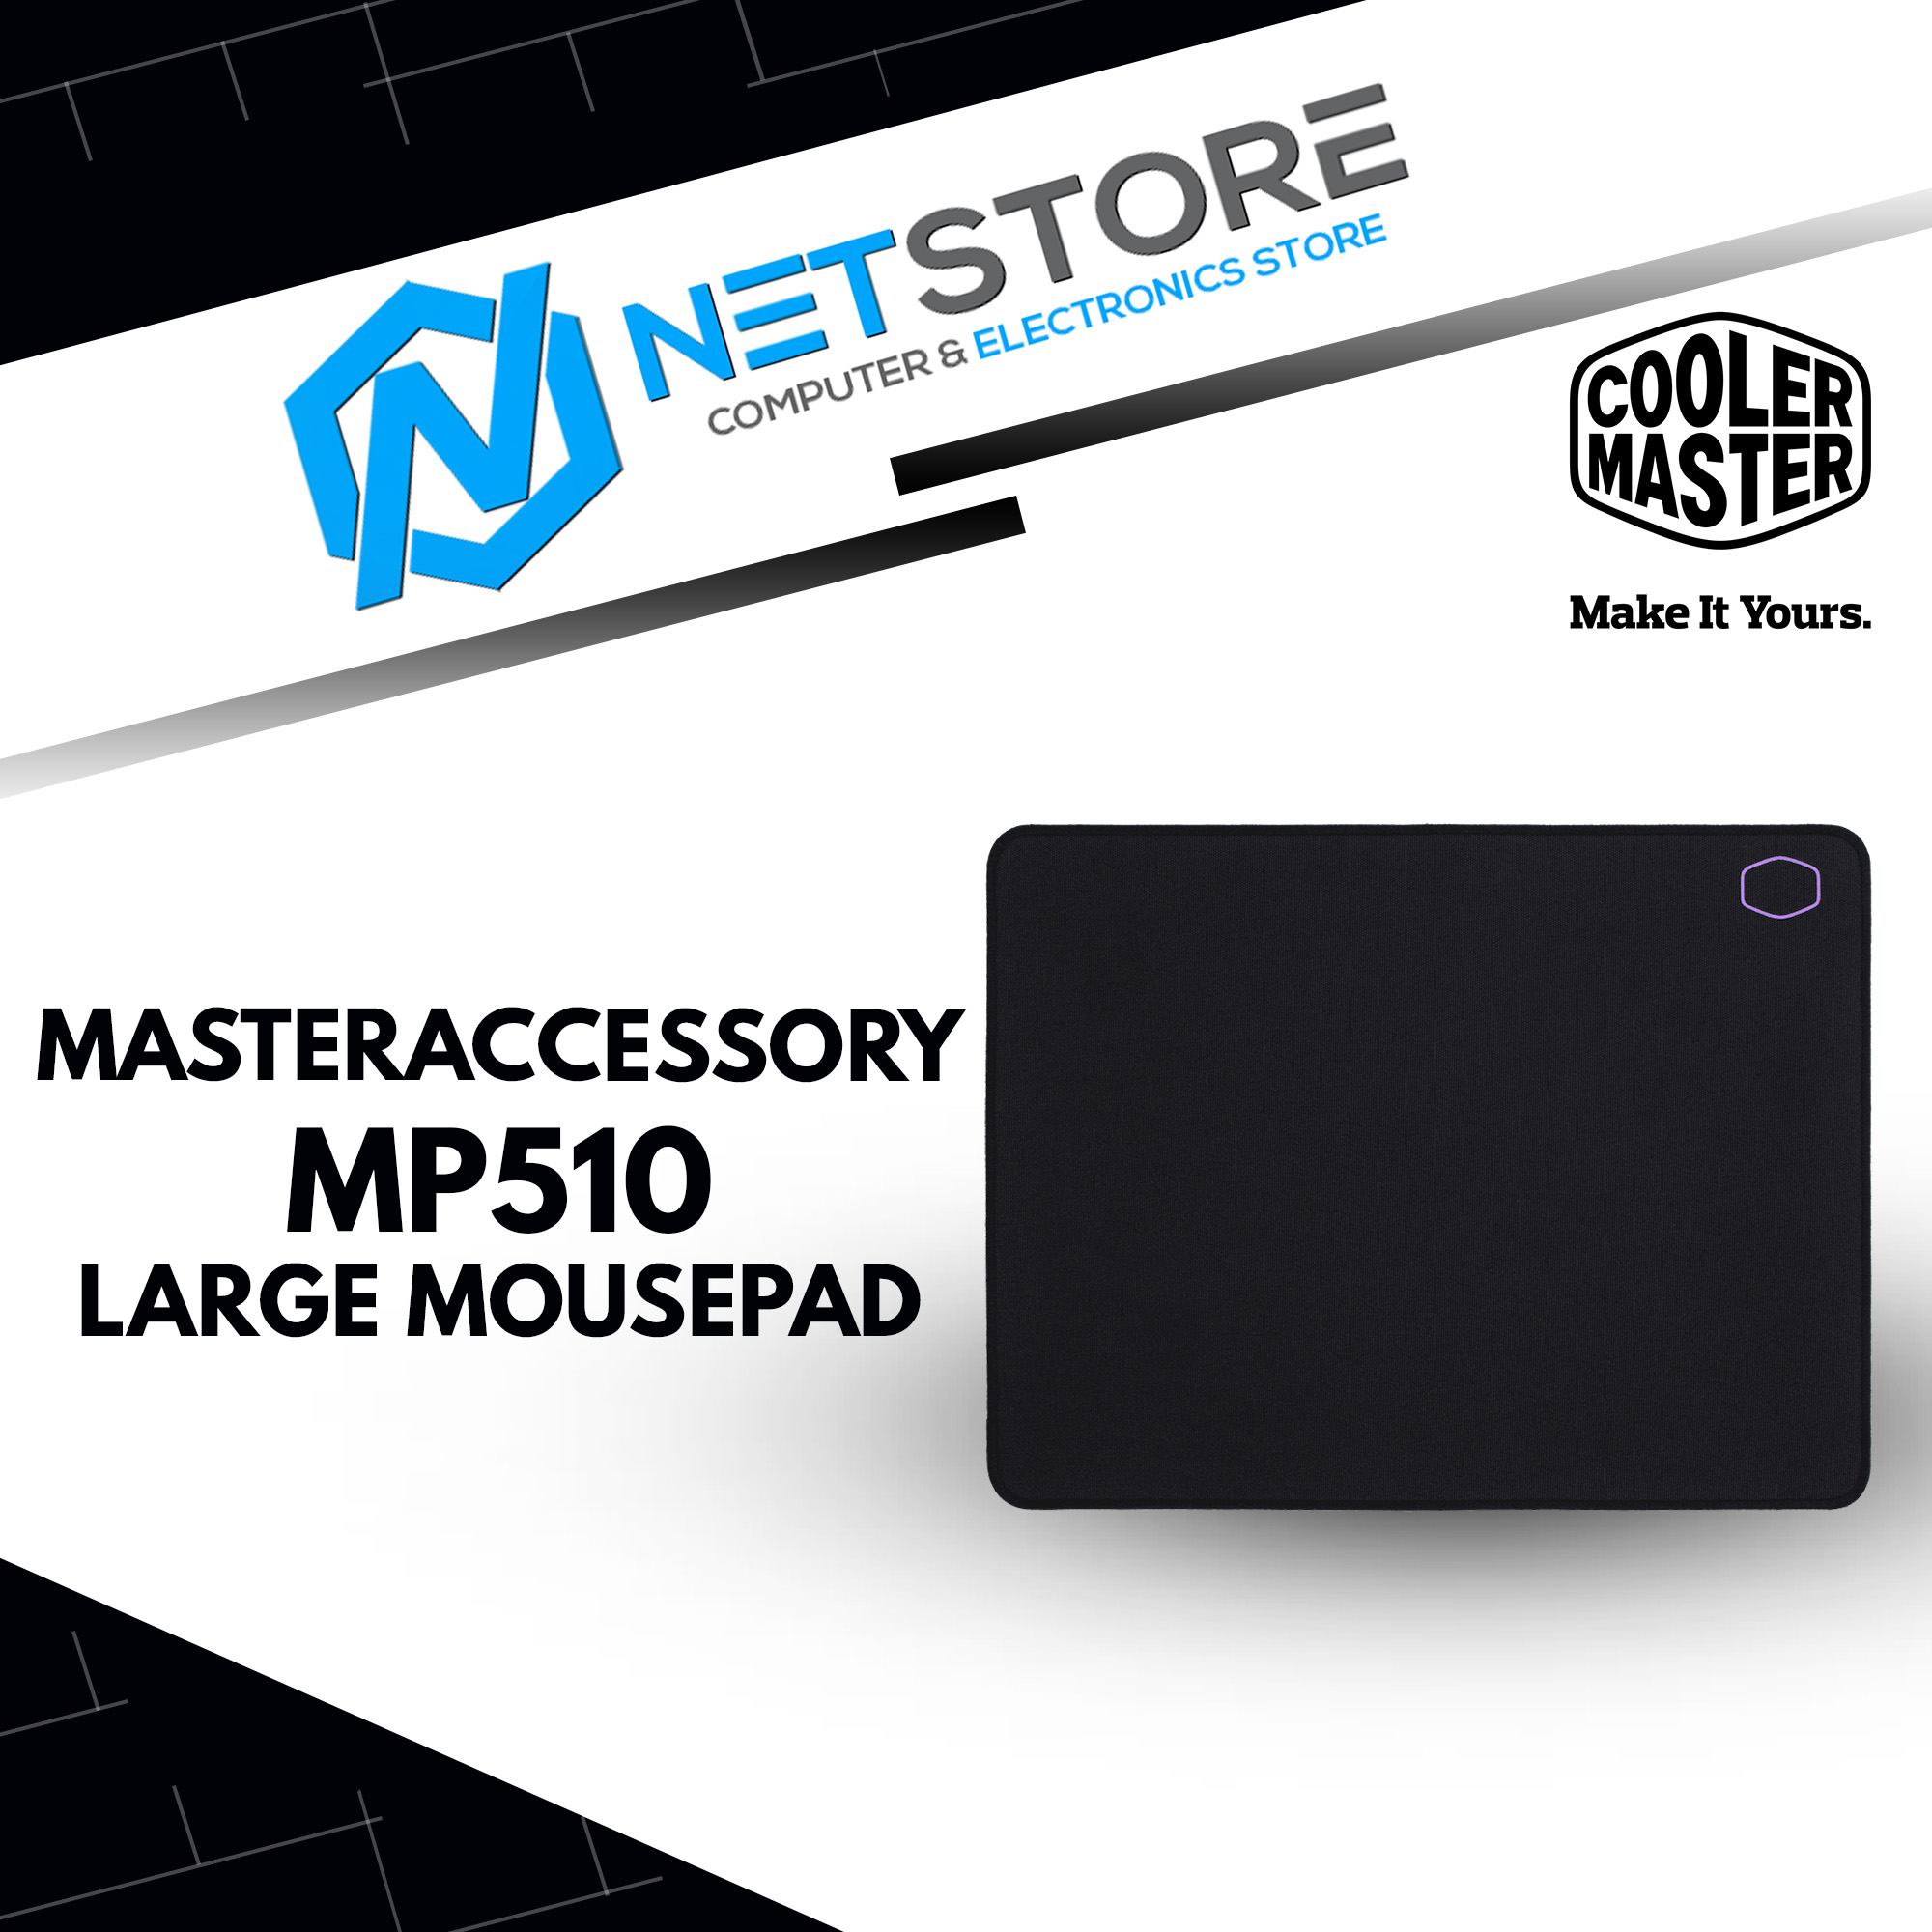 COOLER MASTER MASTERACCESSORY MP510 MOUSEPAD (LARGE) - MPA-MP510-L